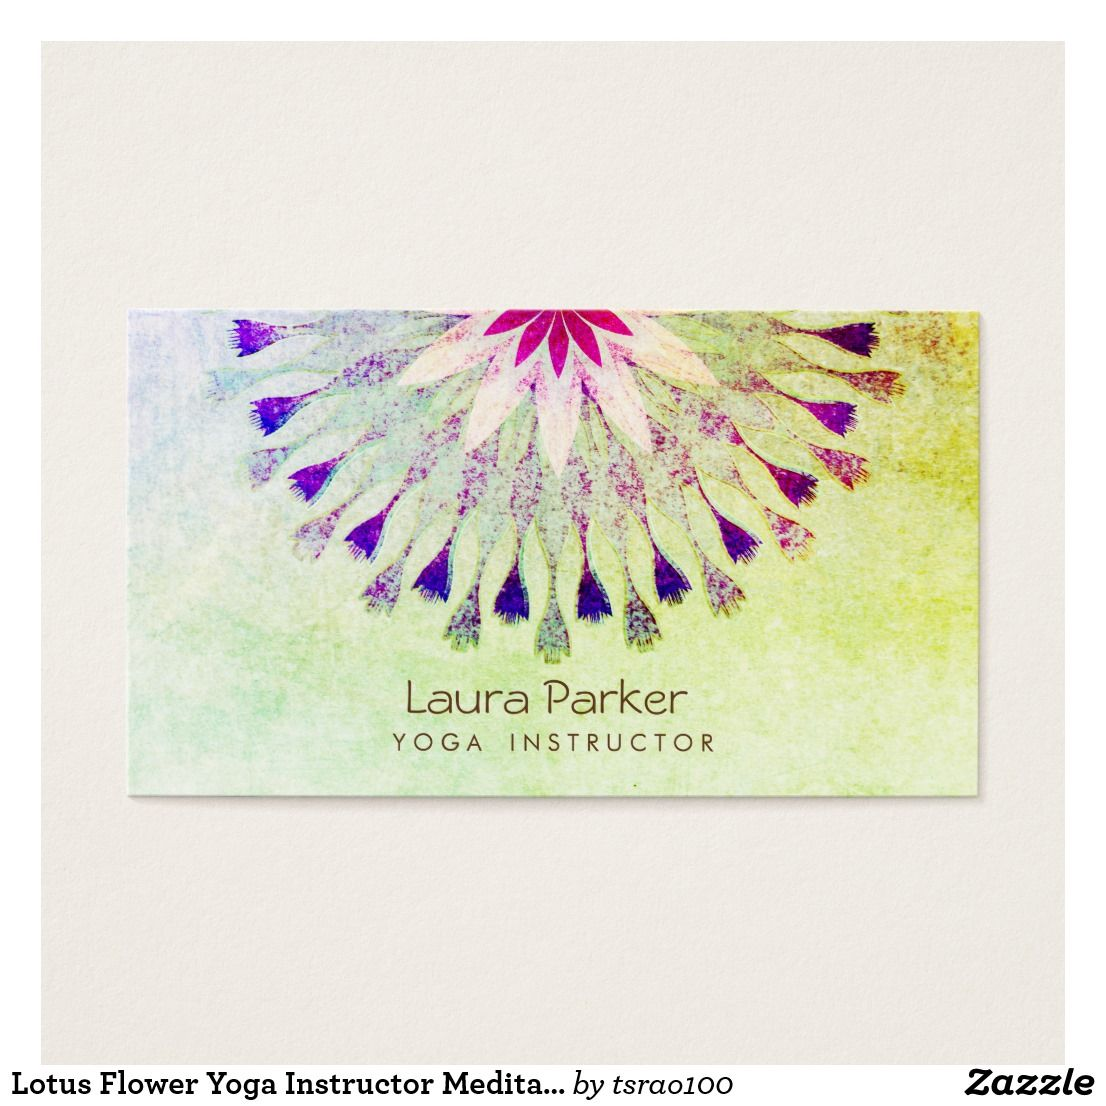 Lotus flower yoga instructor meditation holistic business card lotus flower yoga instructor meditation holistic business card colourmoves